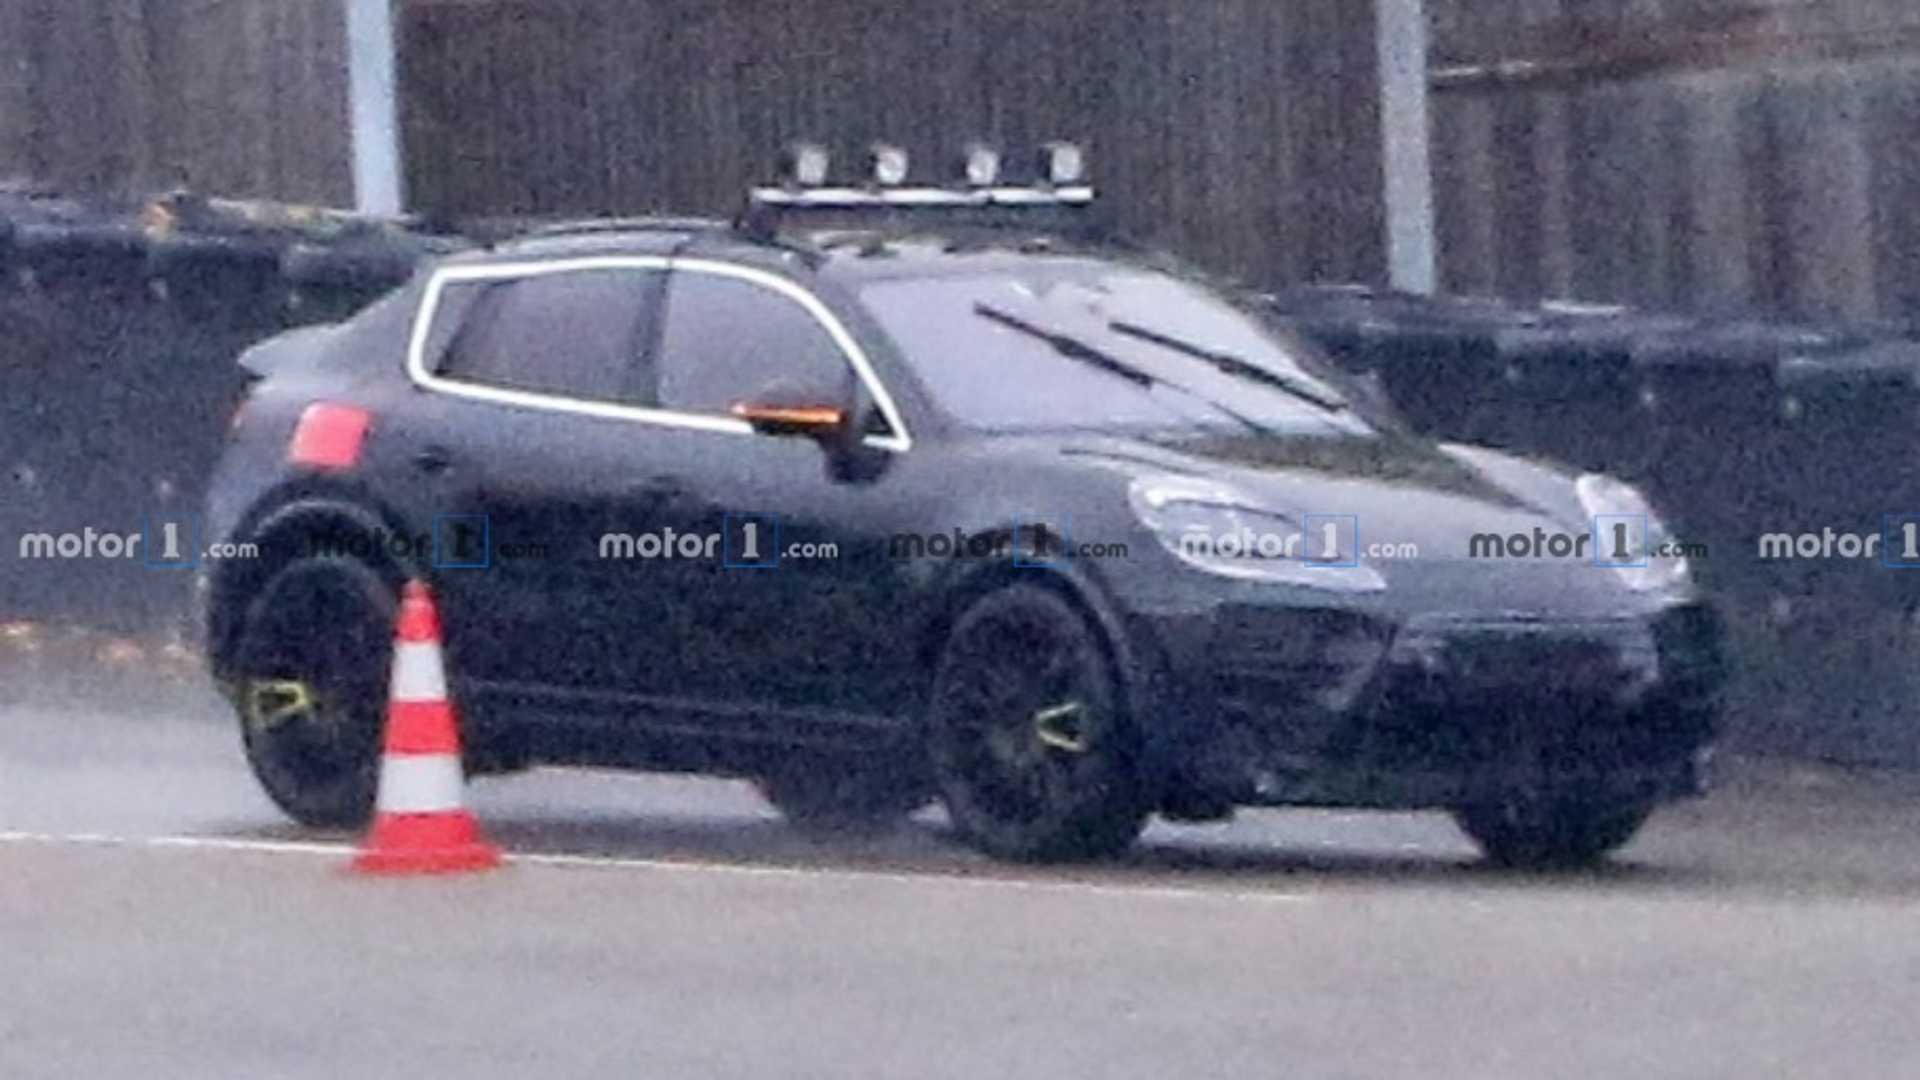 Porsche has finally taken the all-electric variant of its Macan SUV out for some tests, as evidenced by these freshly made spy shots. Let us have a look!